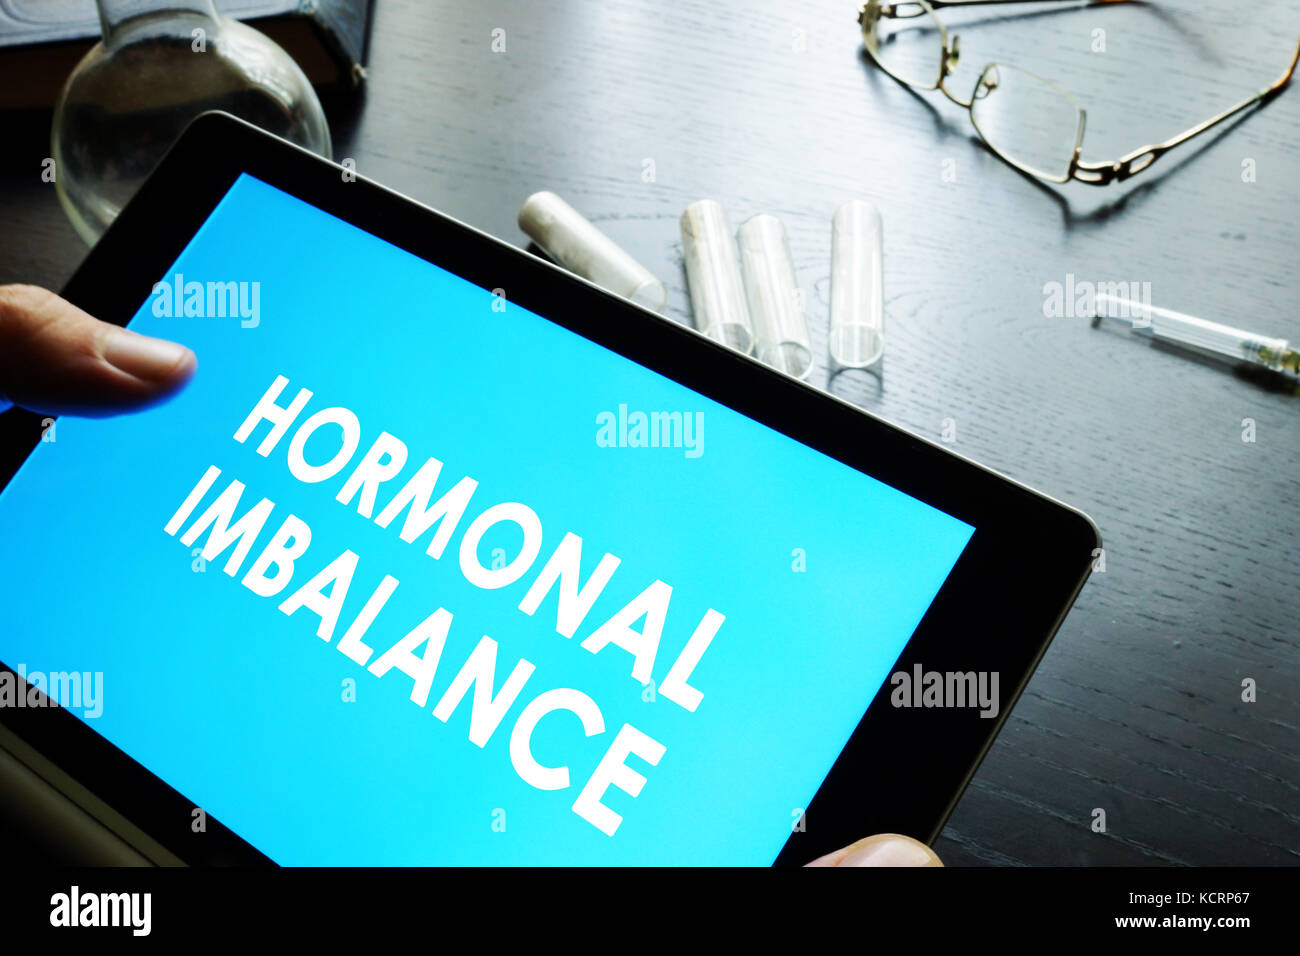 Hormonal imbalance sign on a tablet. - Stock Image